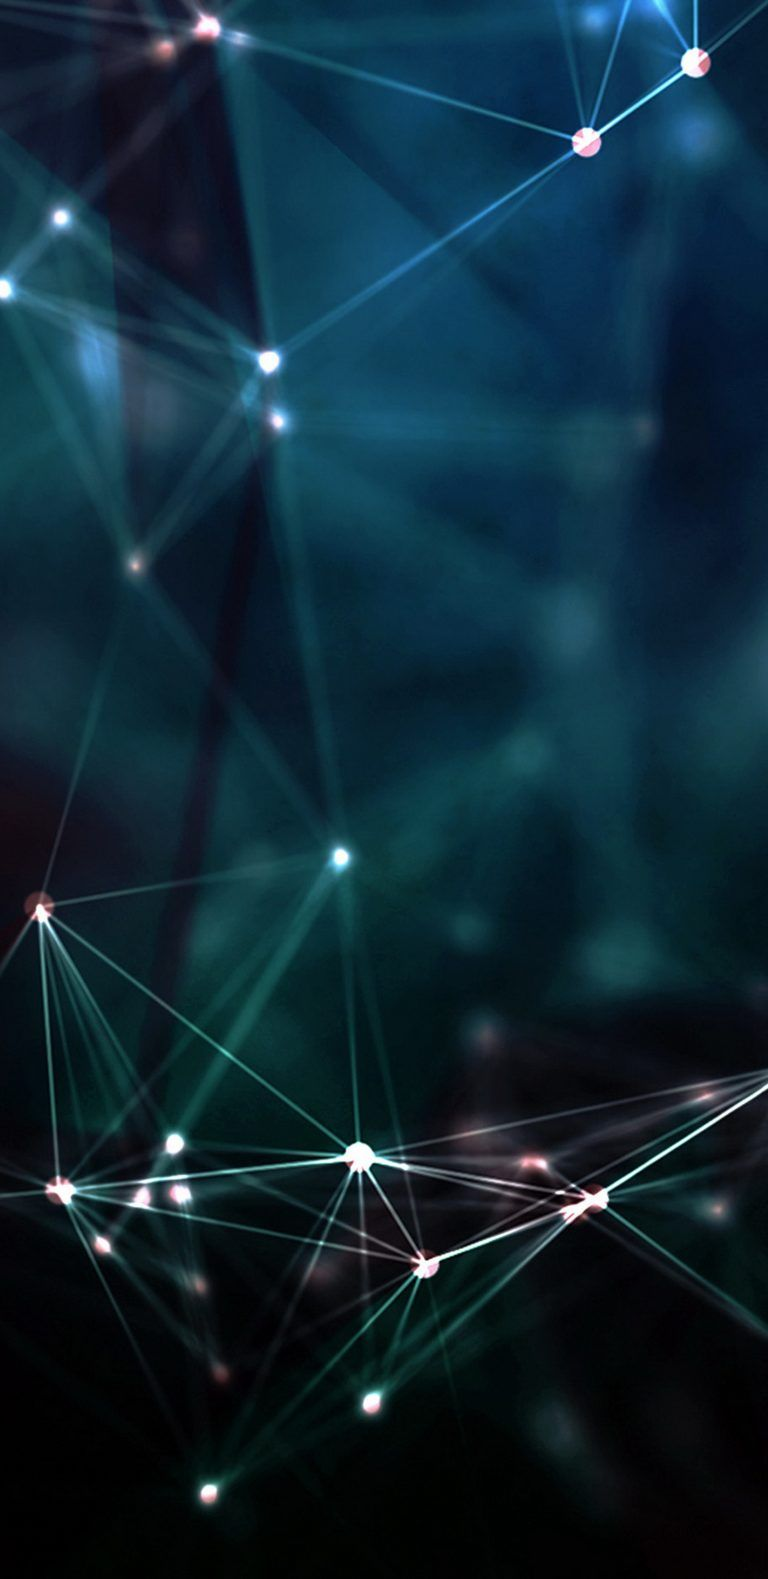 3D Dark Background with Lights for Samsung Galaxy S9 Wallpaper | Samsung | Pinterest | Samsung ...